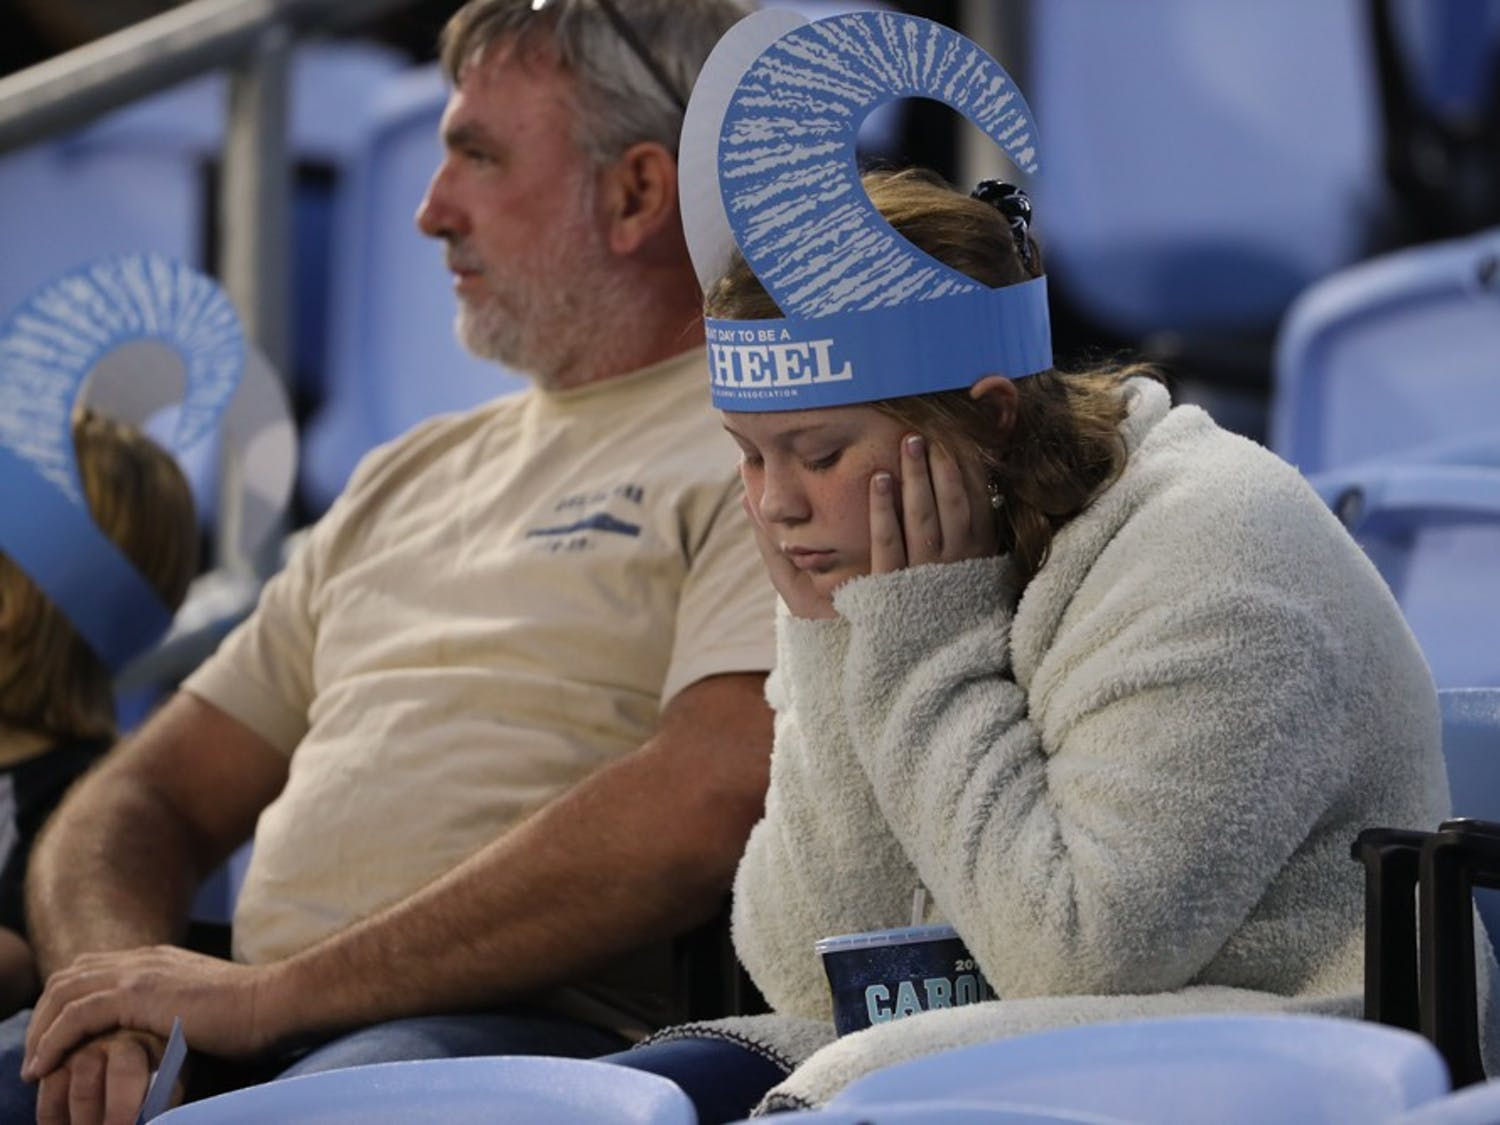 A young fan of UNC Men's Soccer team sits in disappointment after the crucial loss on Senior Day.